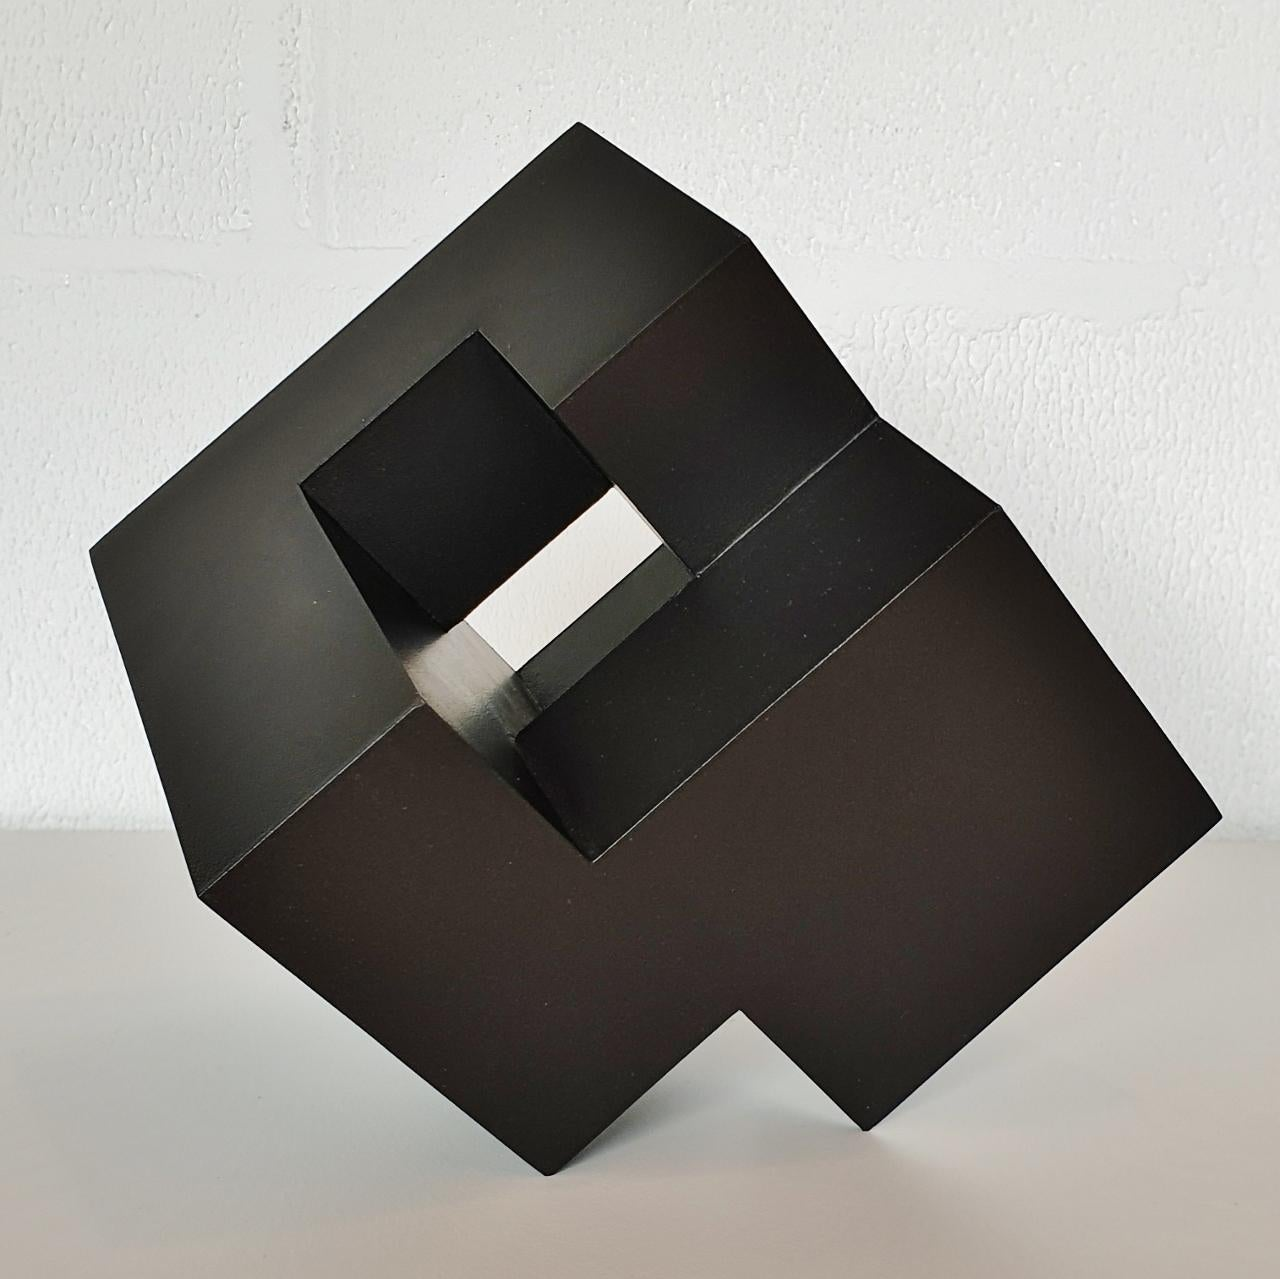 Cube architectural I no. 3/15 - contemporary modern abstract wall sculpture